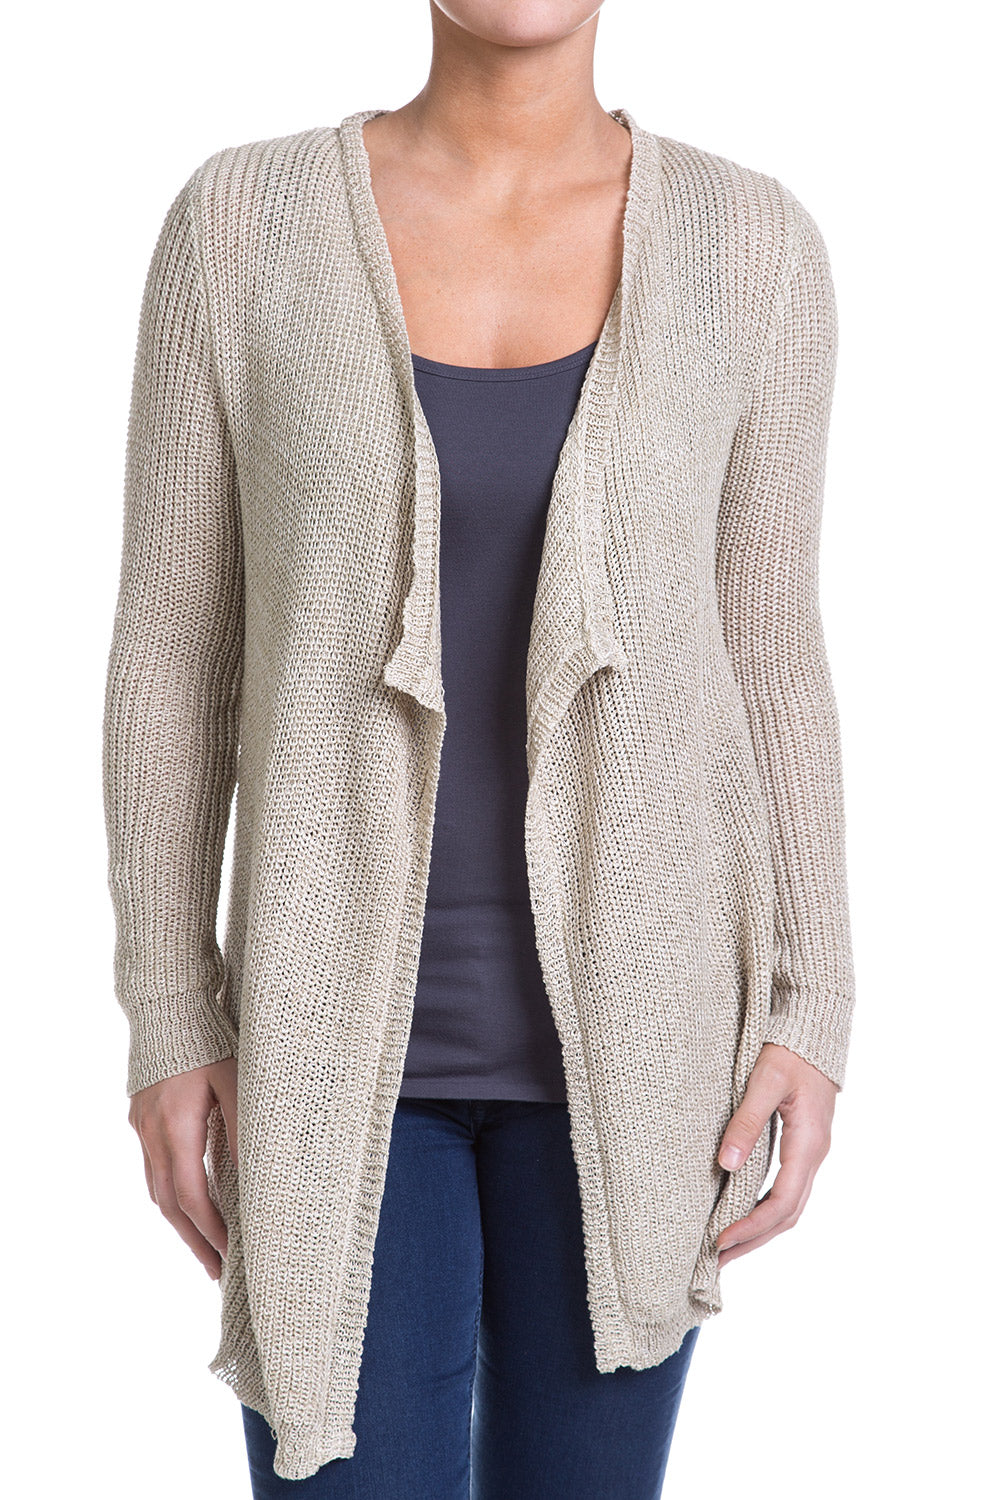 Type 2 Shimmer of Elegance Cardigan